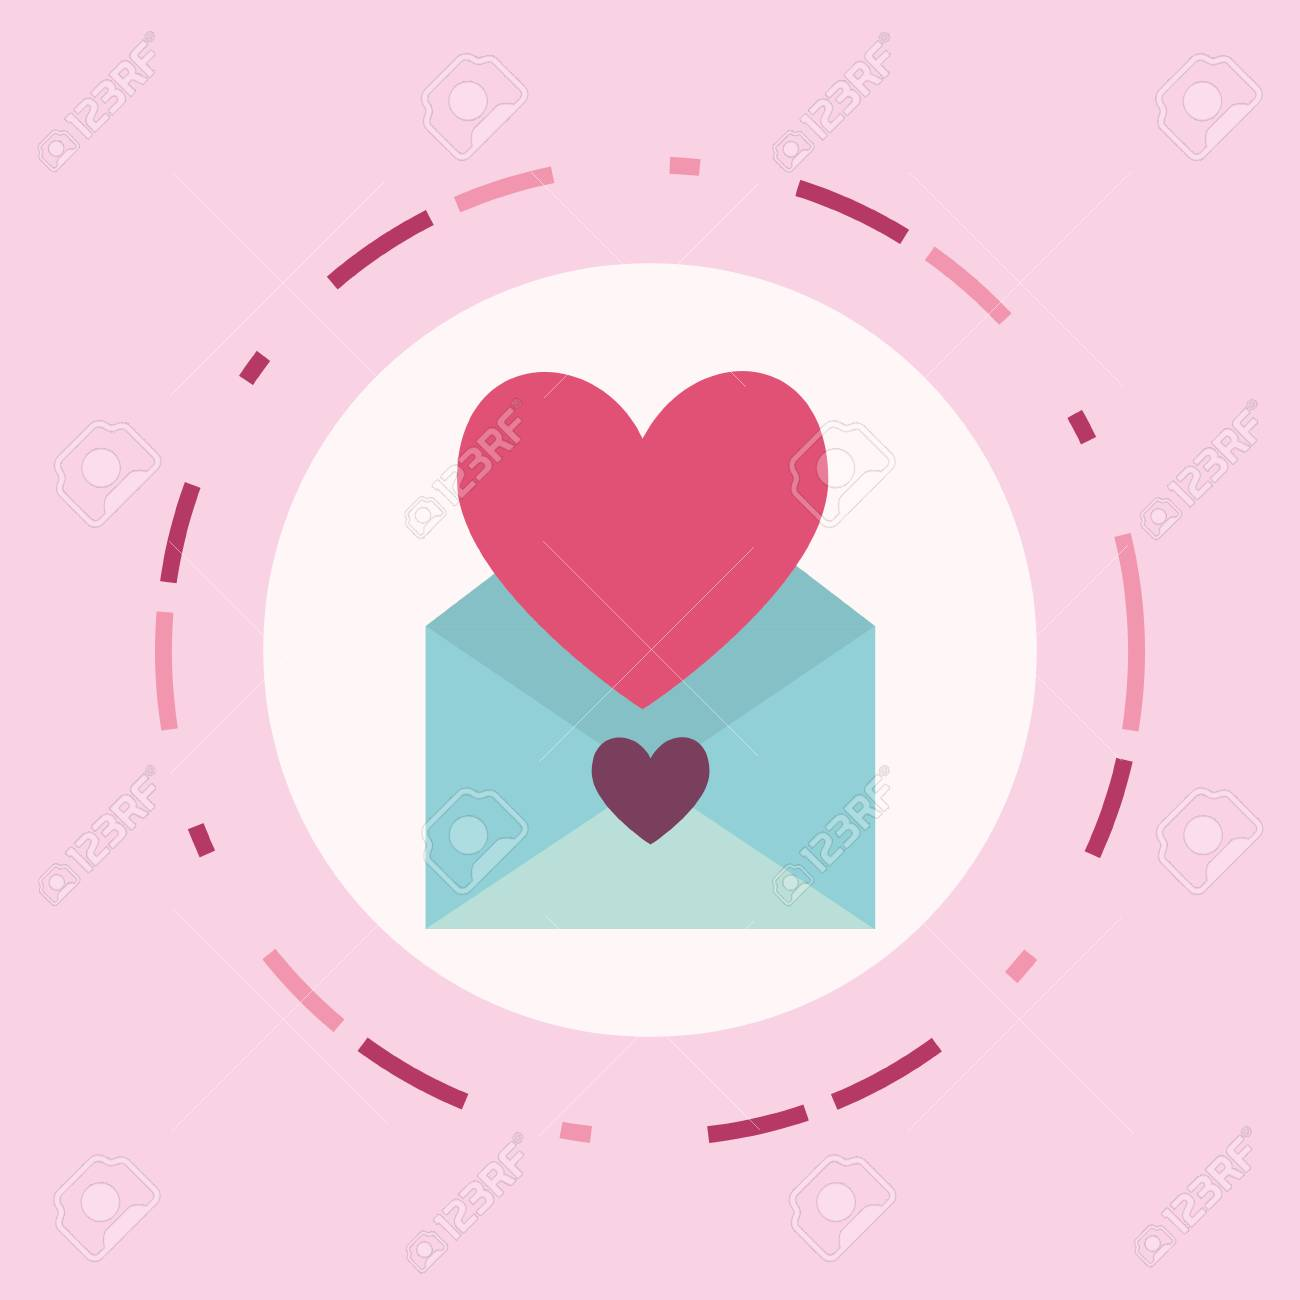 love letter design with envelope and heart icon over pink background colorful design vector